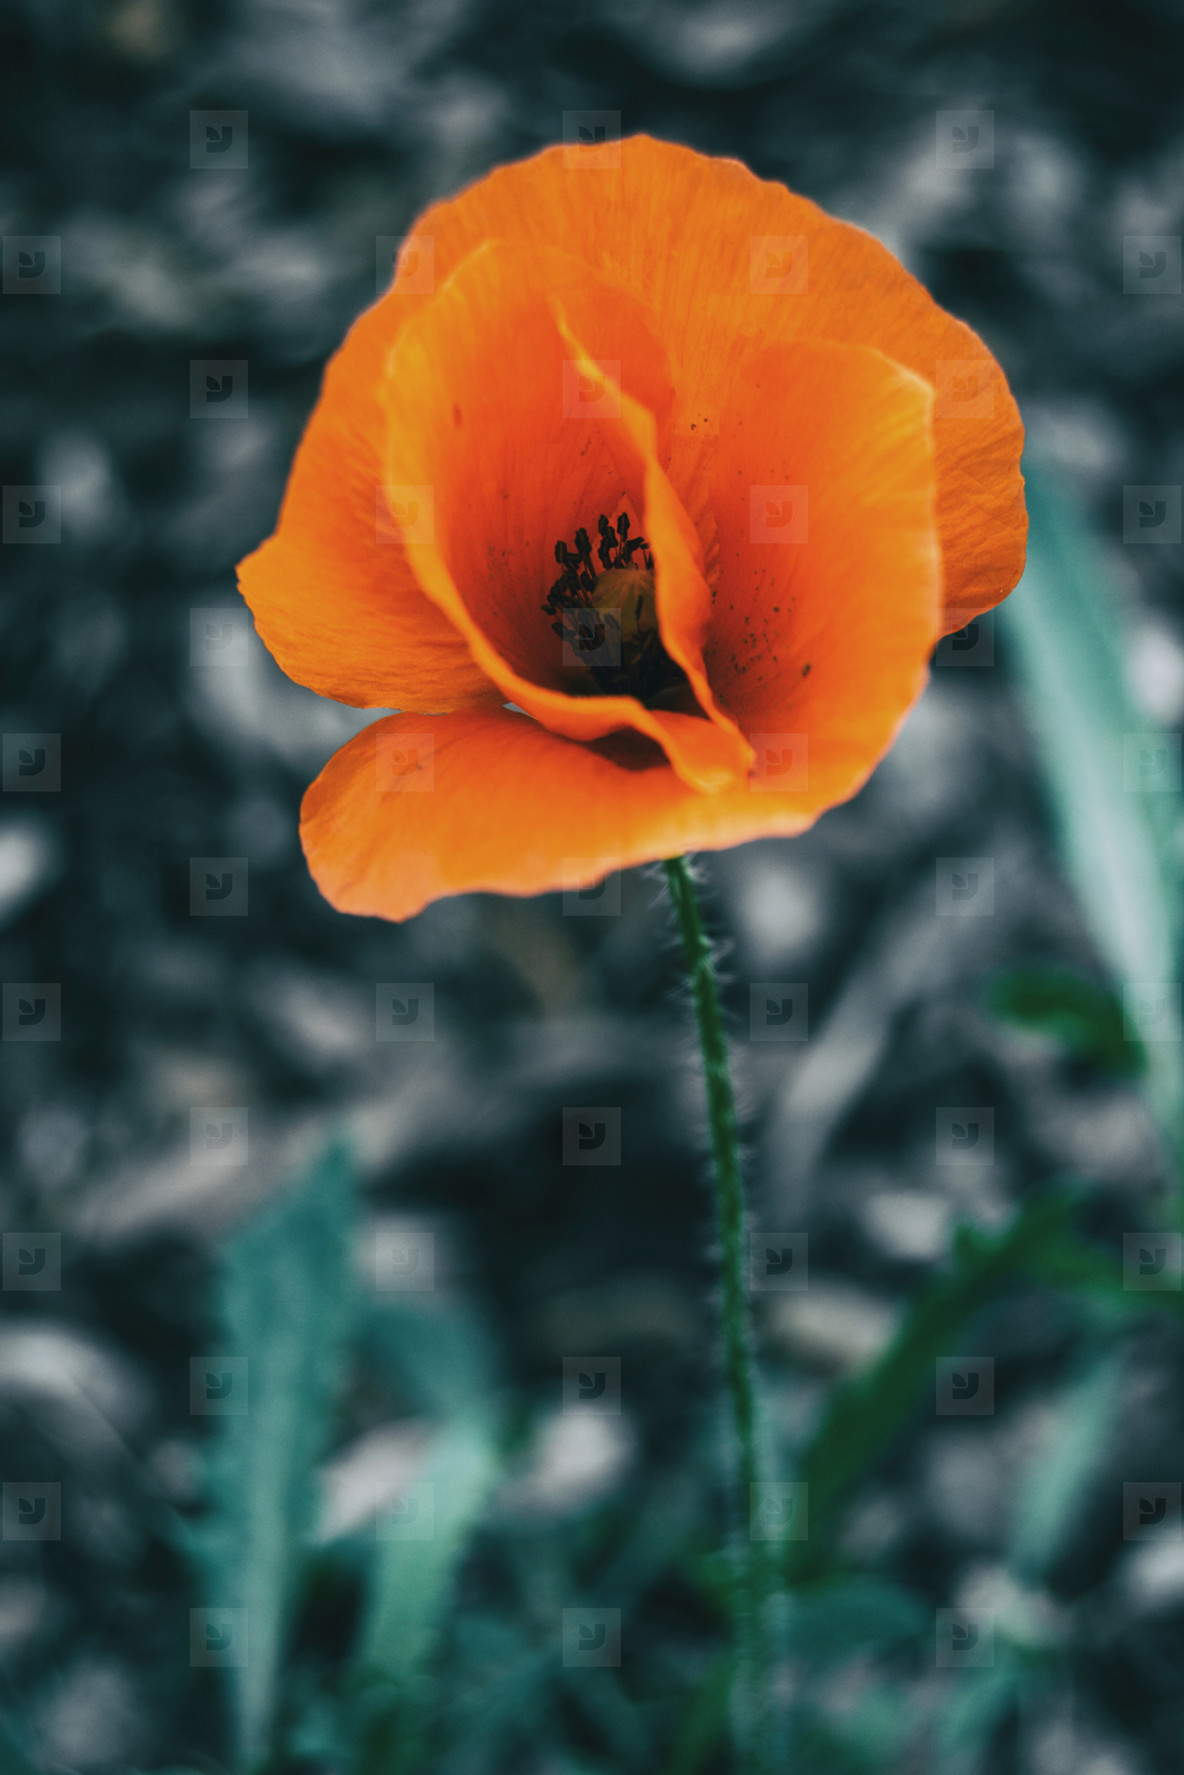 Detail of an isolated orange flower of papaver rhoeas